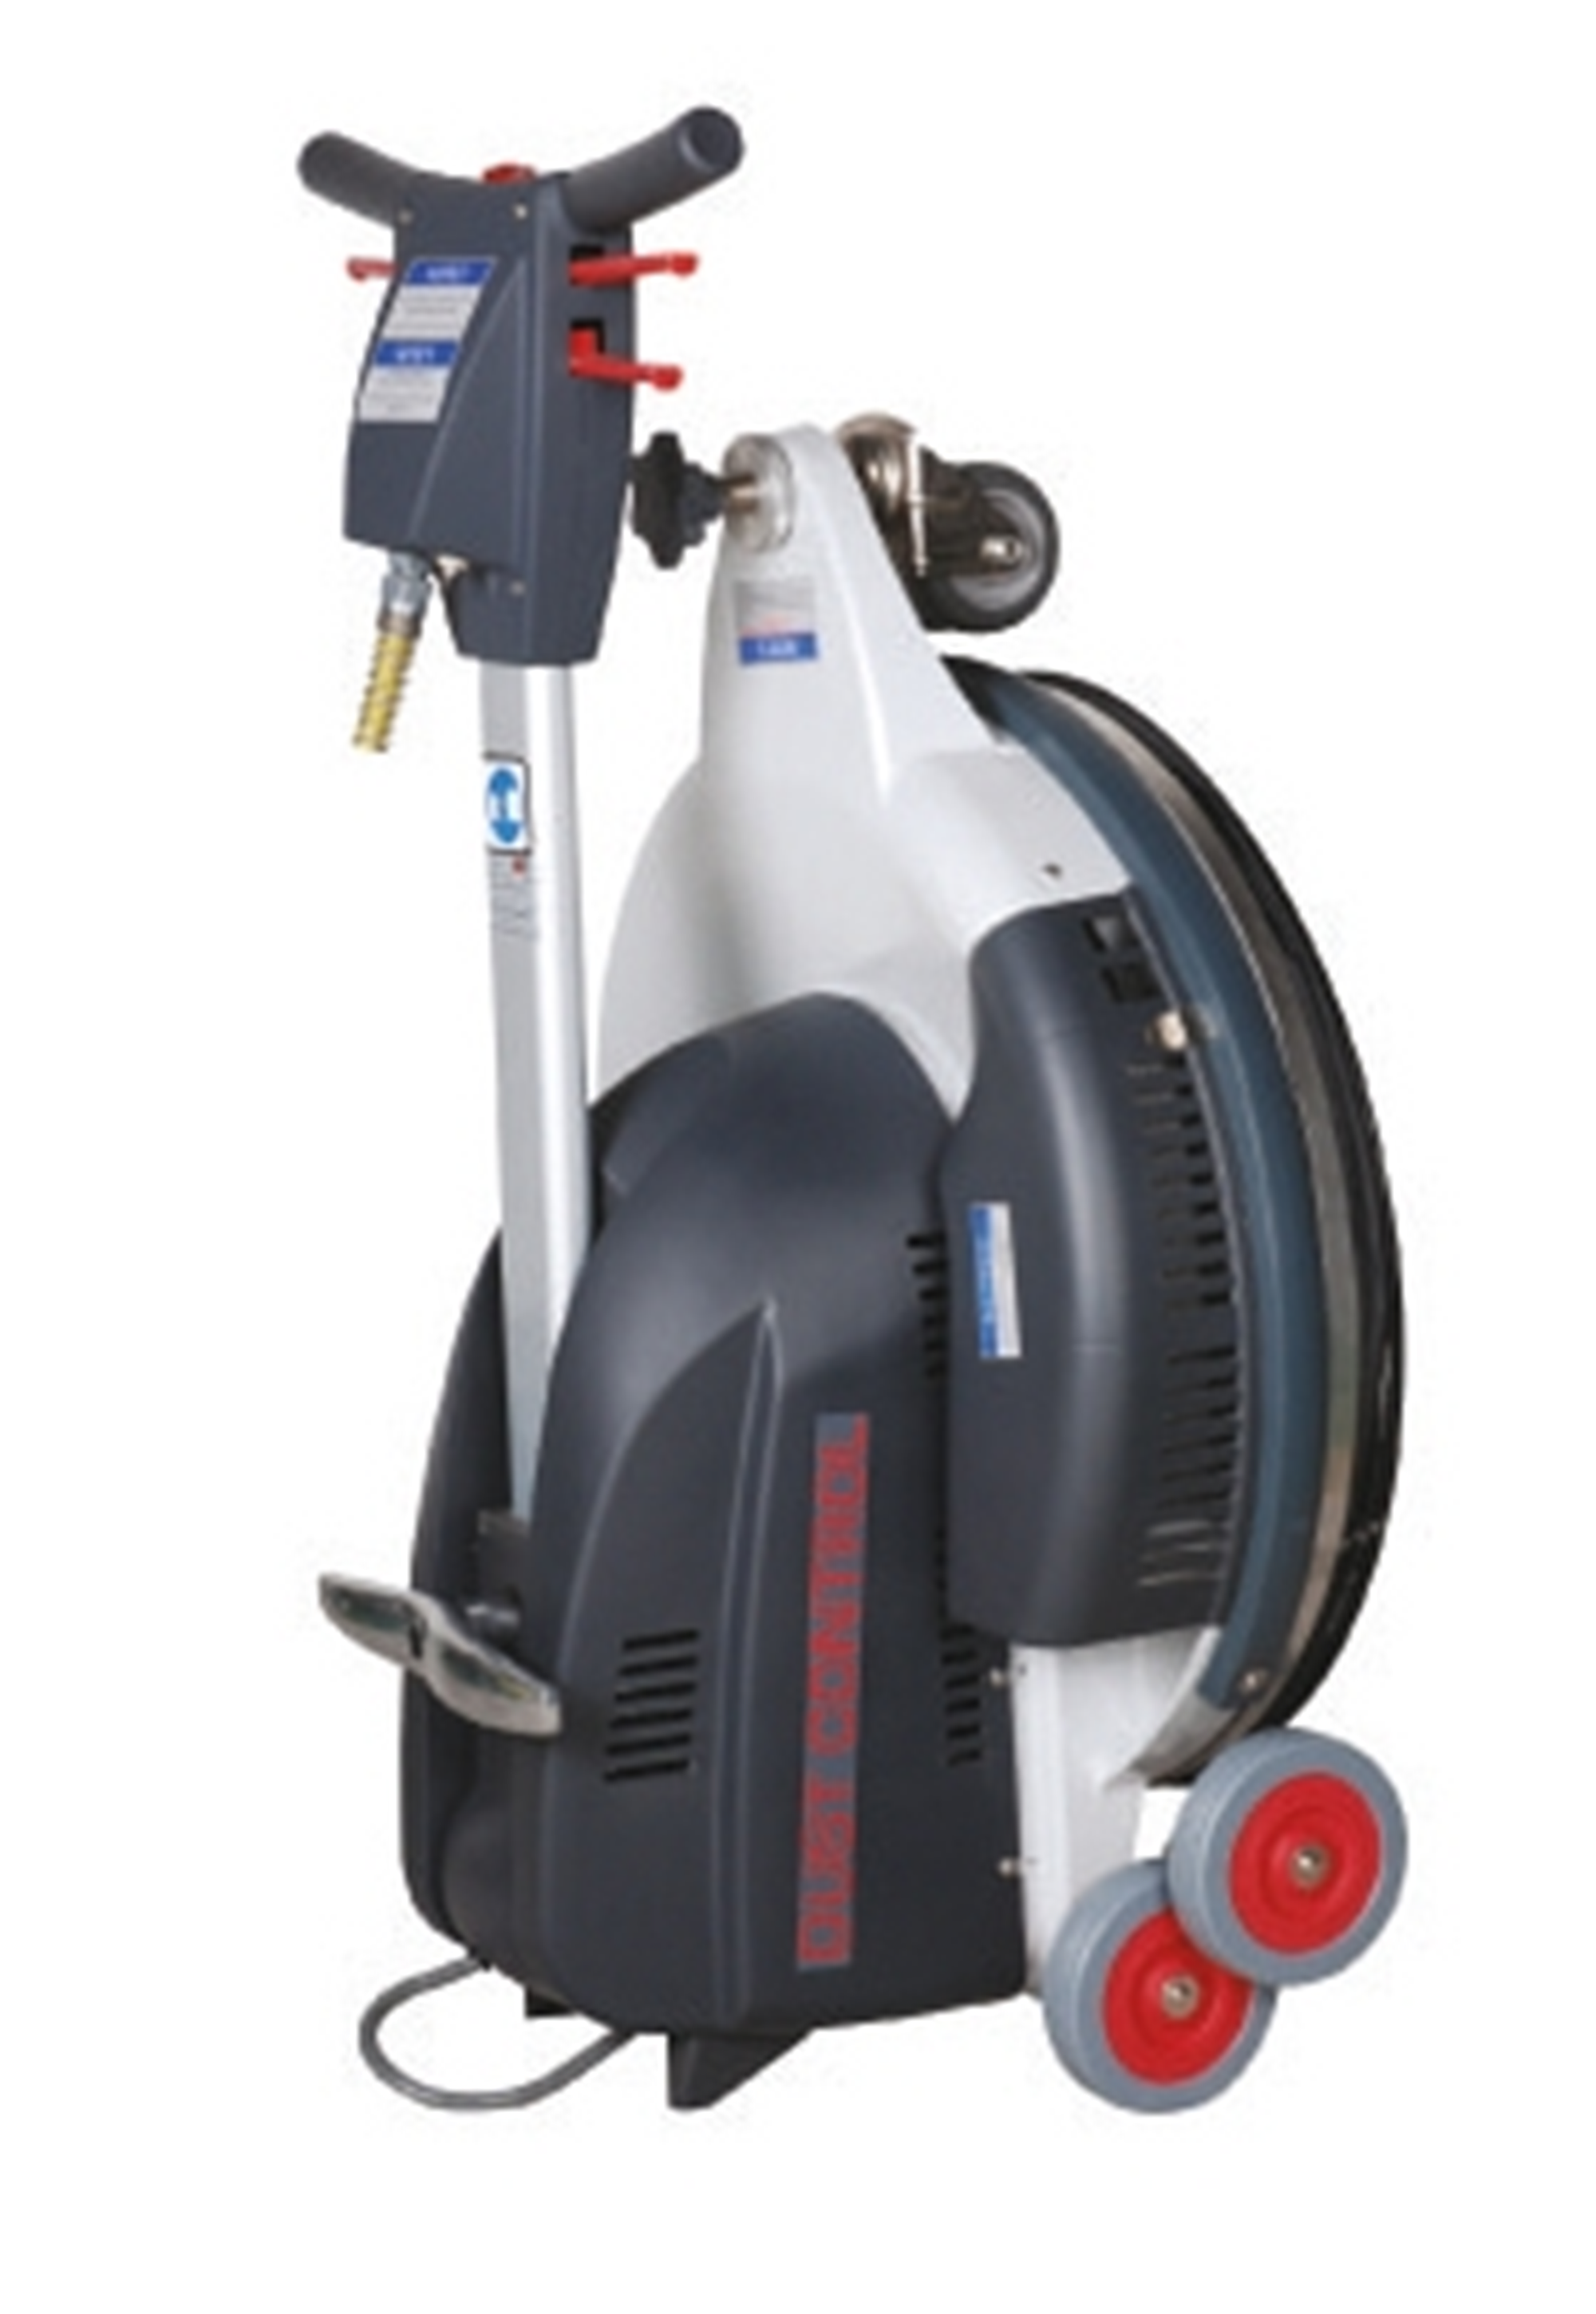 Product, Floor Cleaning, Burnishers, Electric cord, Nilfisk, DRAGON 20 2000 RPM DUST CONT